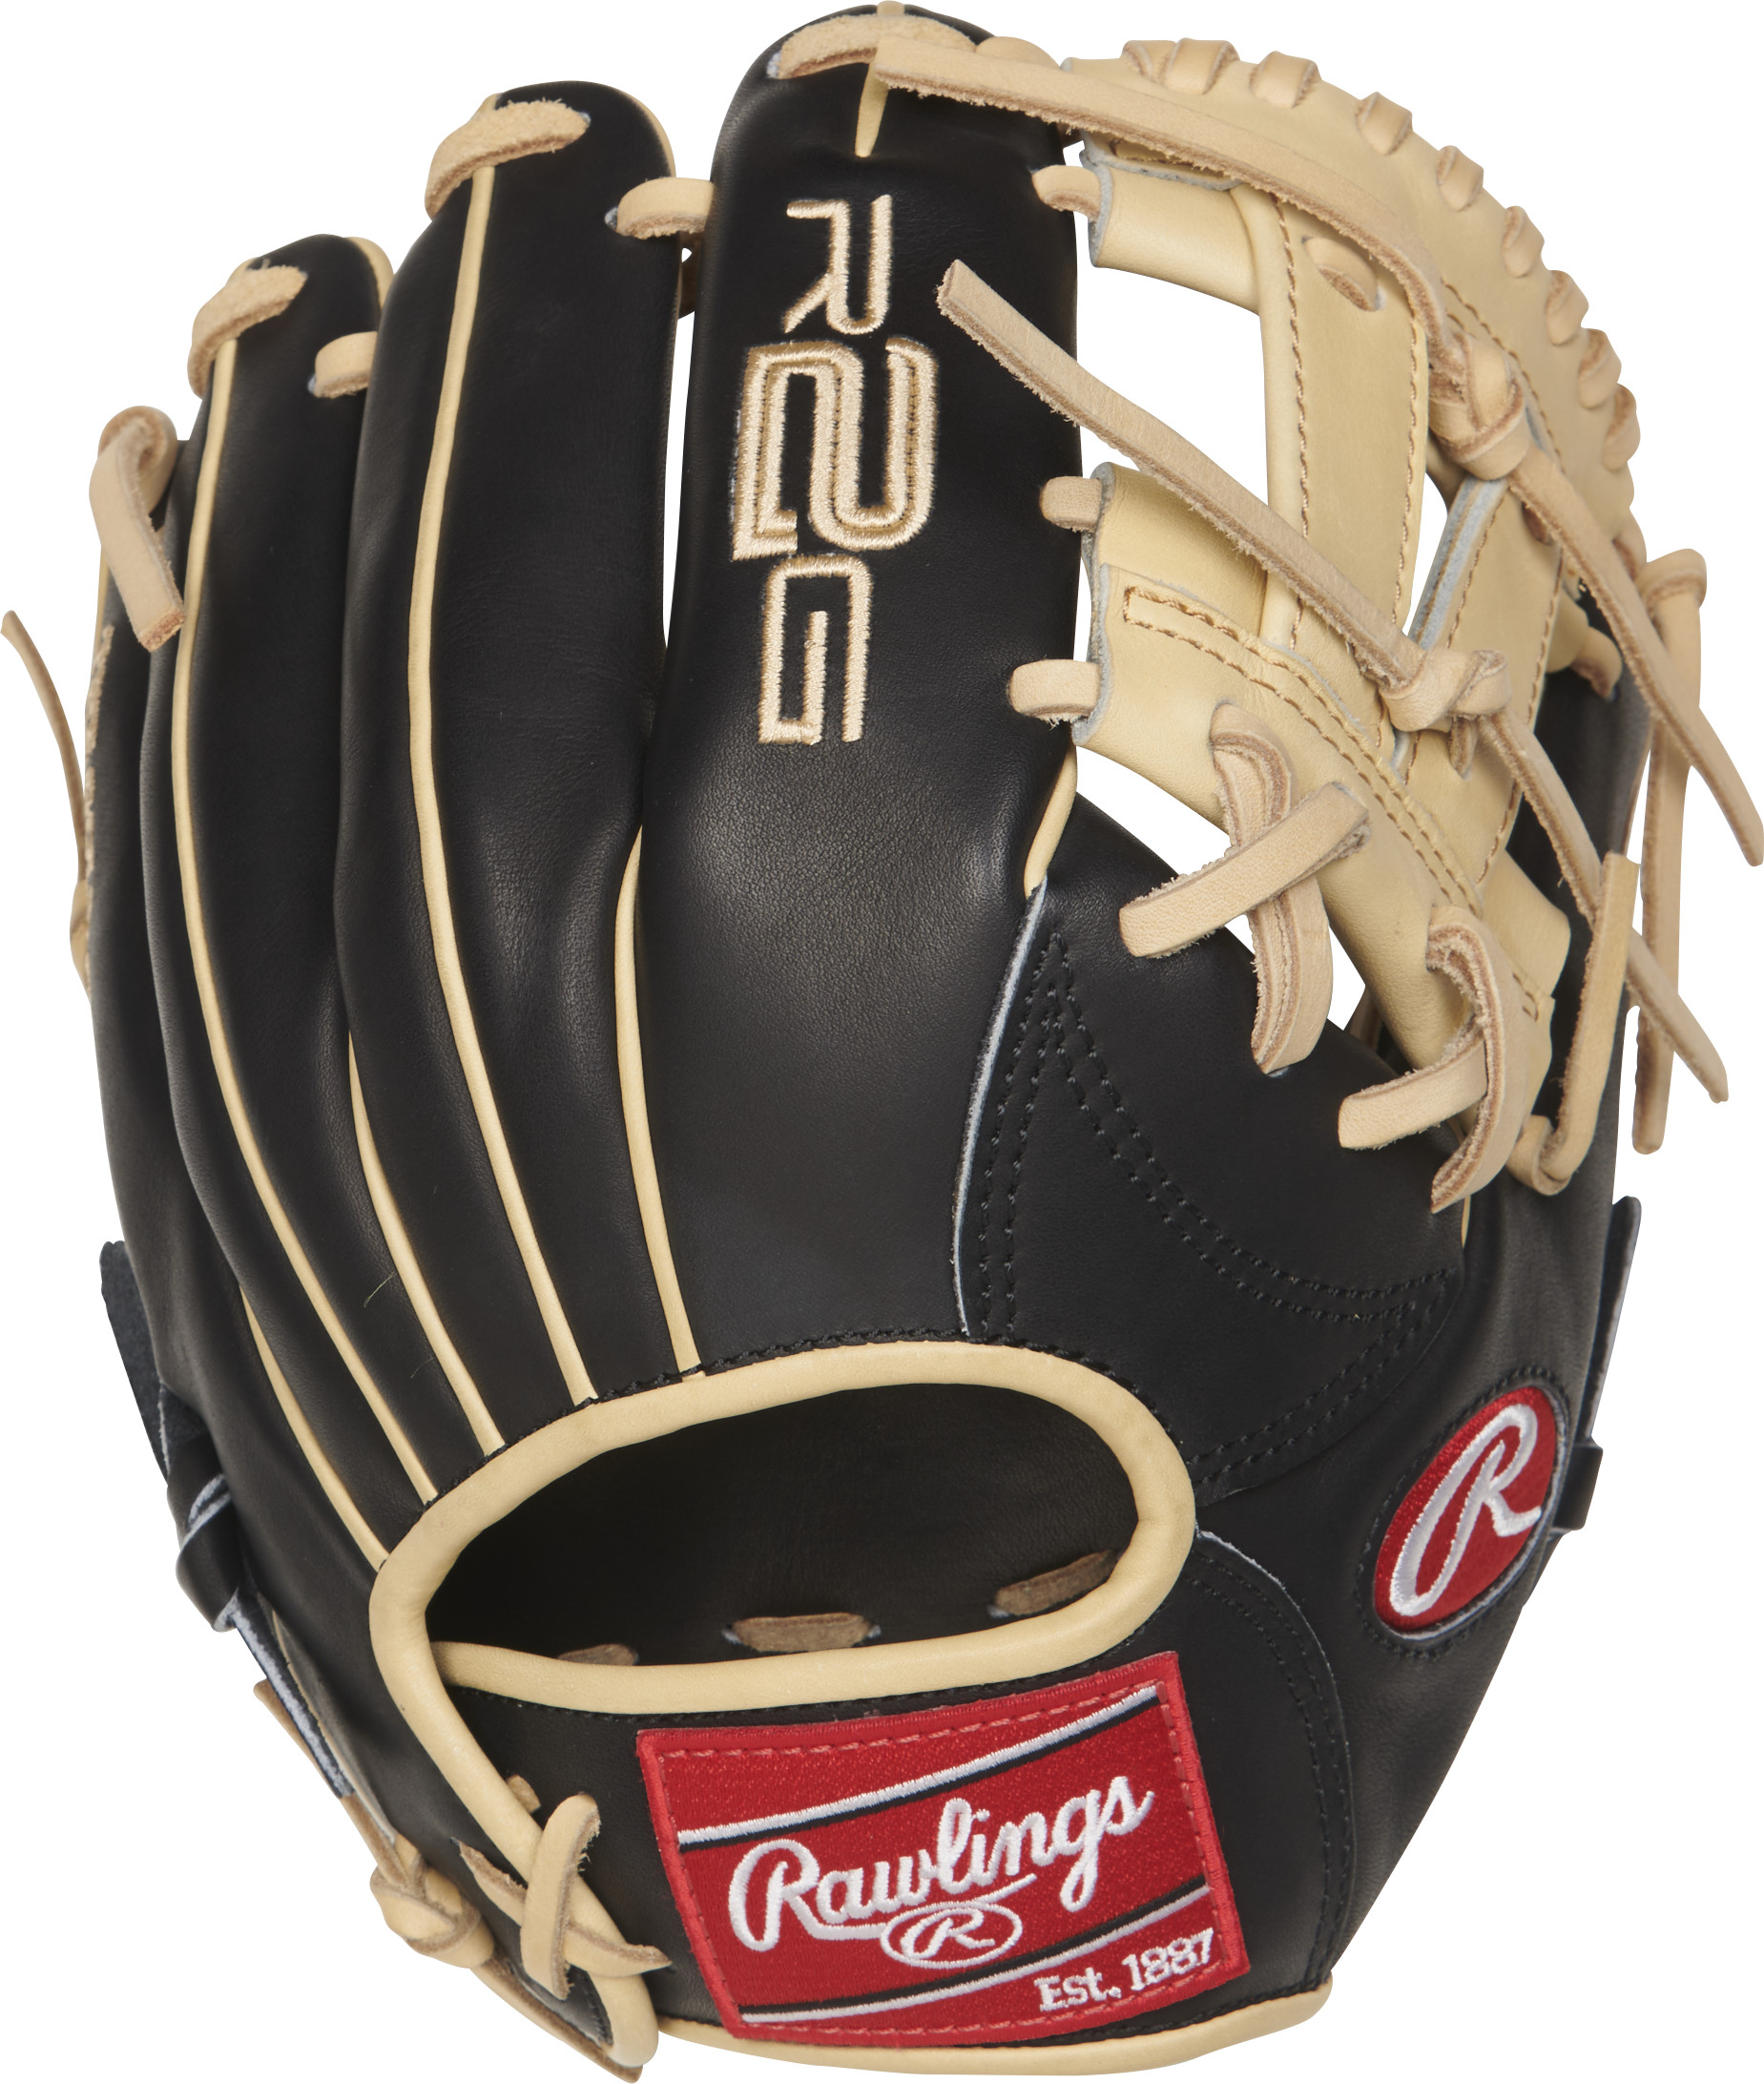 http://www.bestbatdeals.com/images/gloves/rawlings/PROR882-7BC-2.jpg